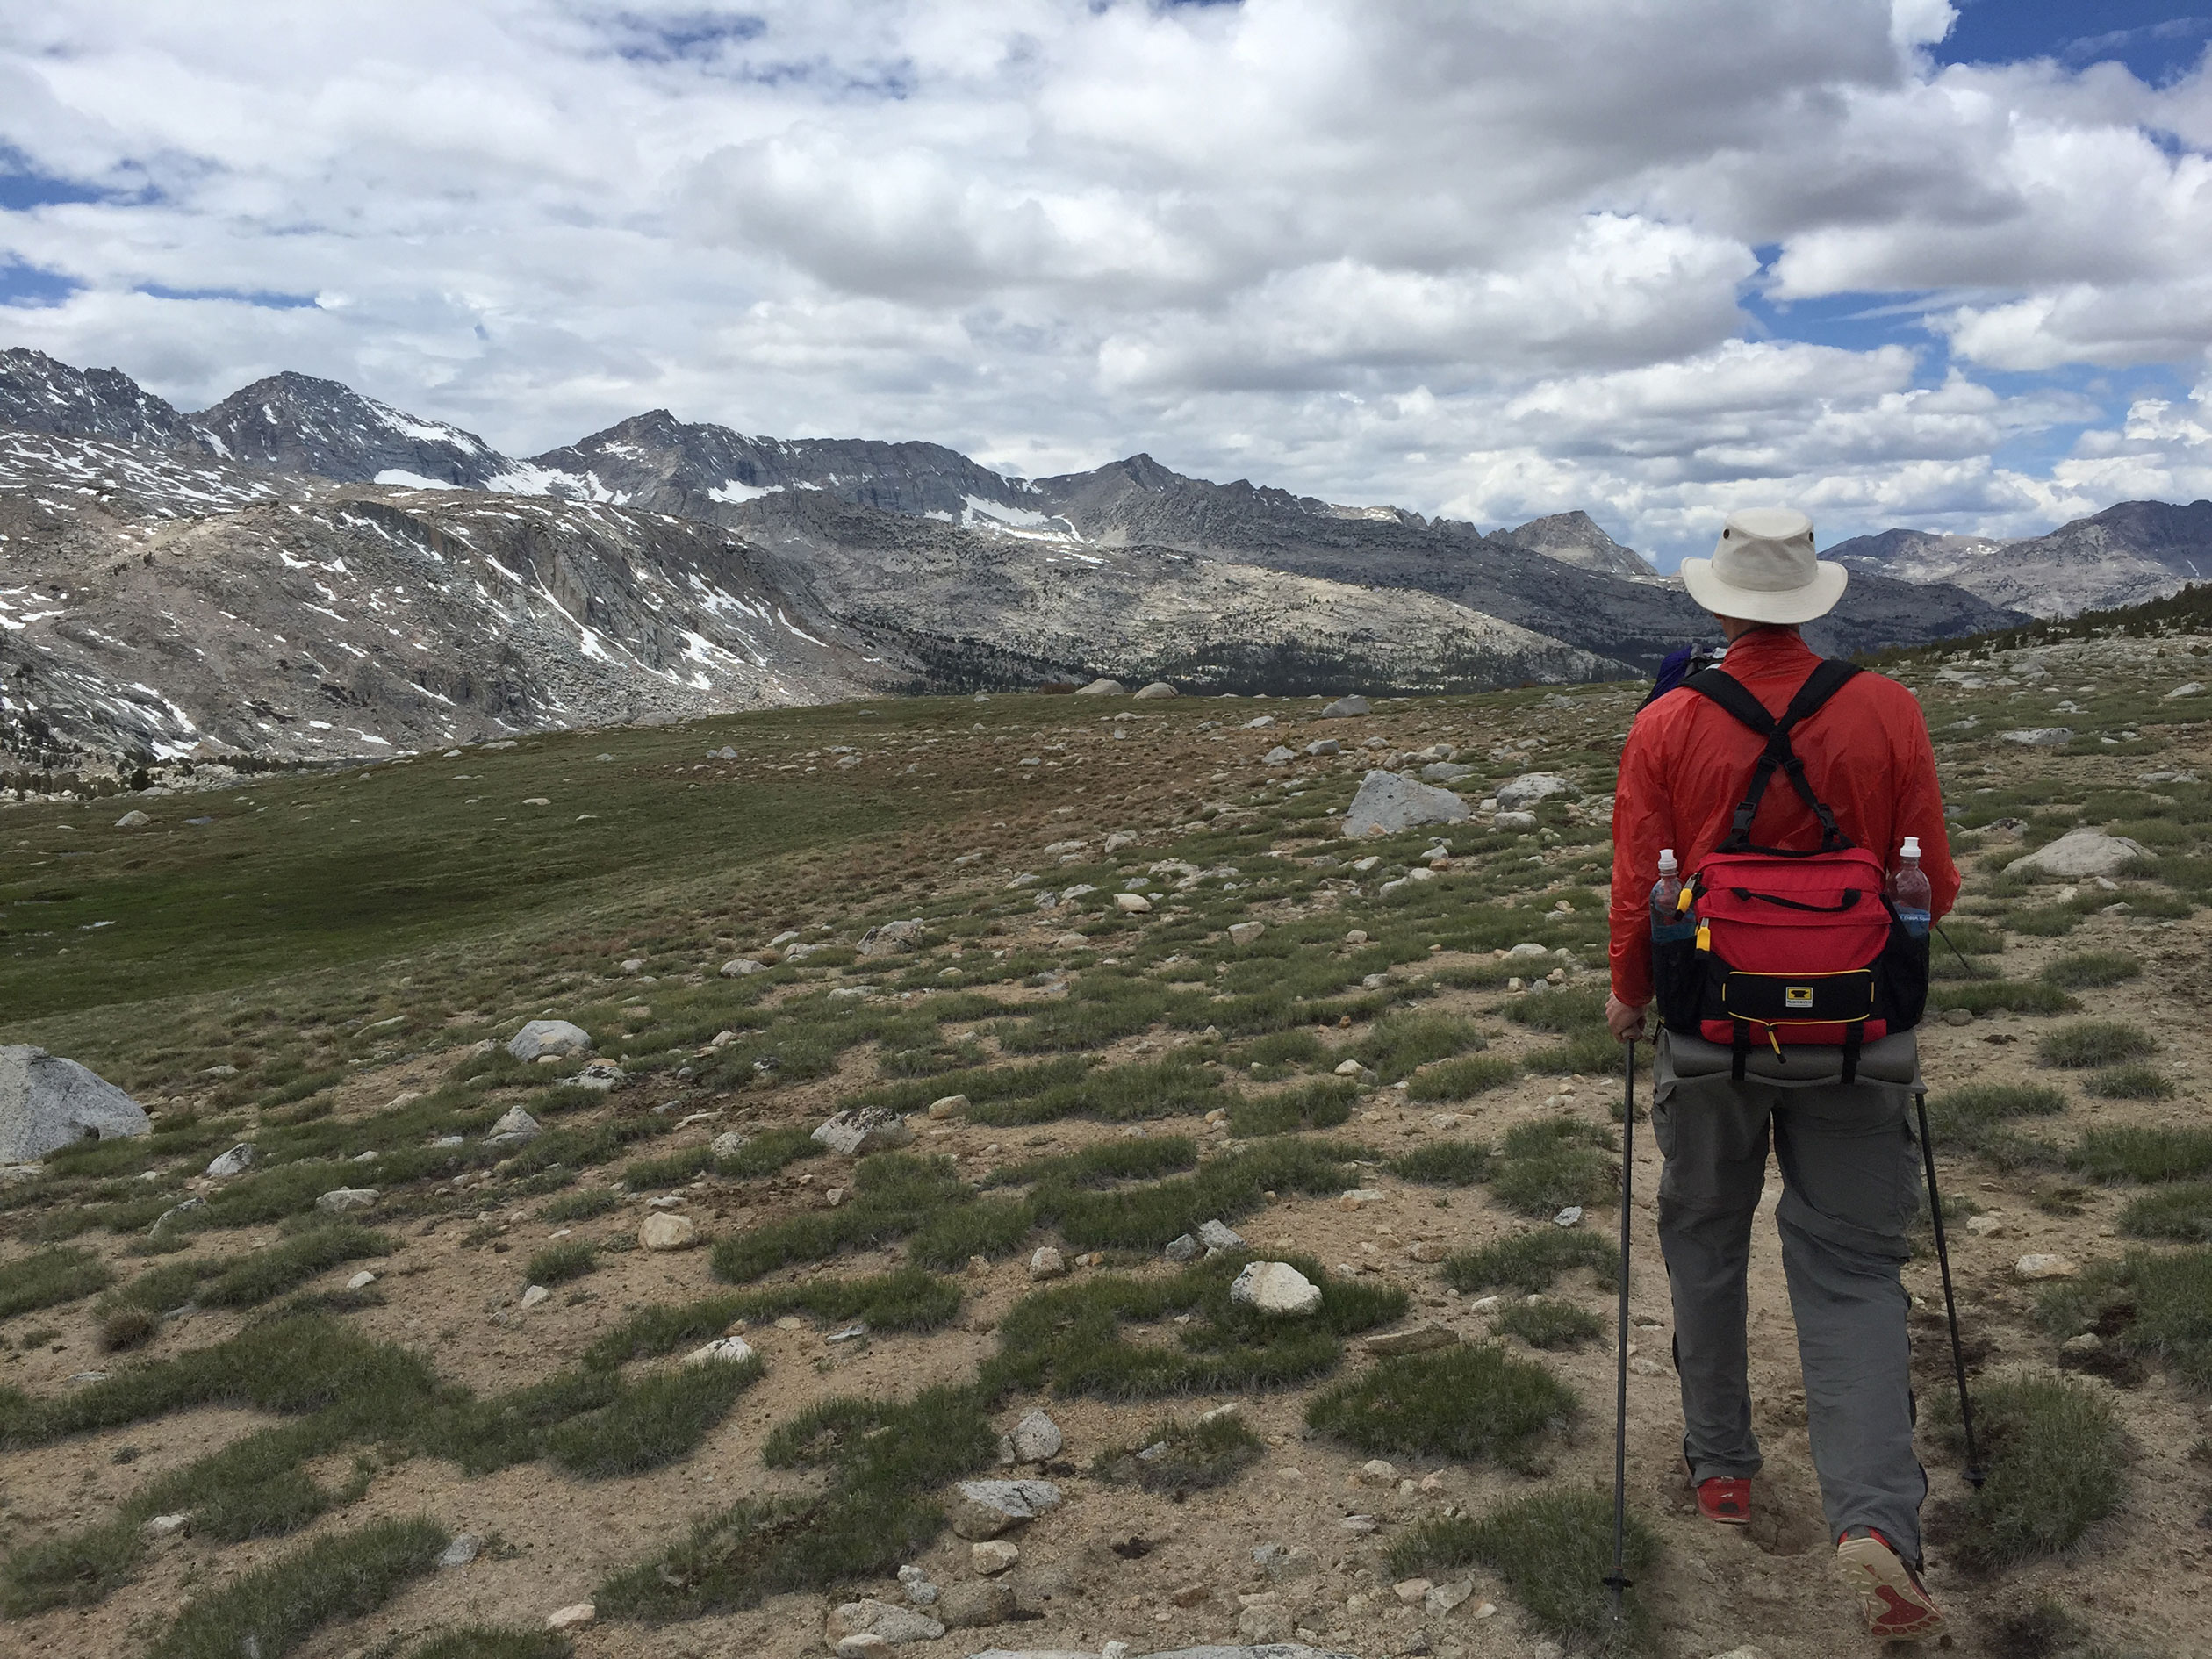 glen hiking puppet pass with mountain smith day pack